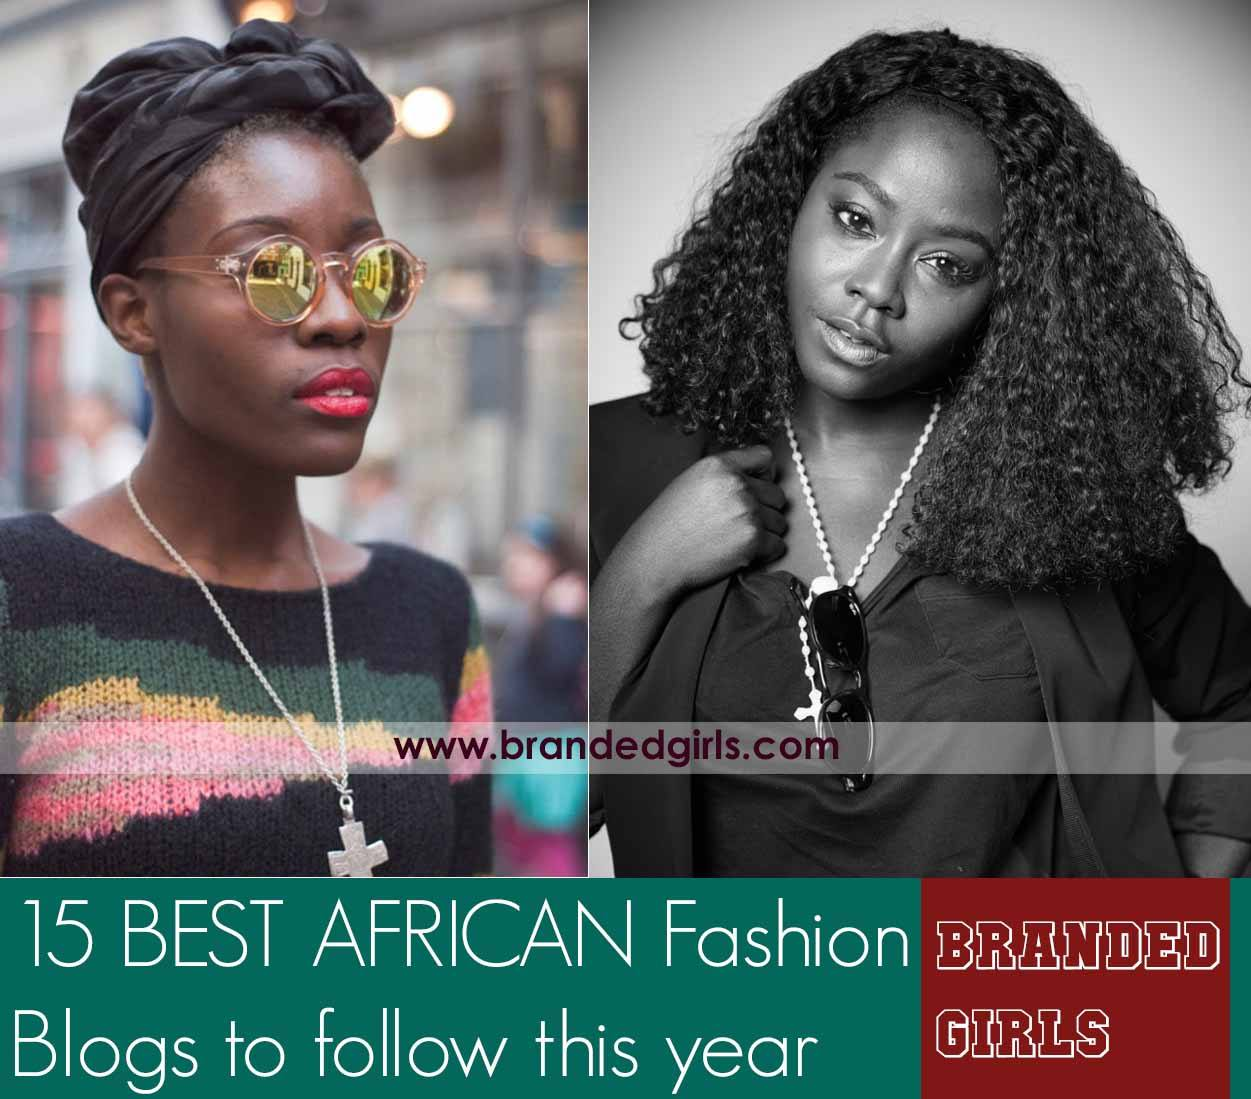 polyvore-sample-19 African Fashion Bloggers-Top 15 African Fashion Blogs to Follow